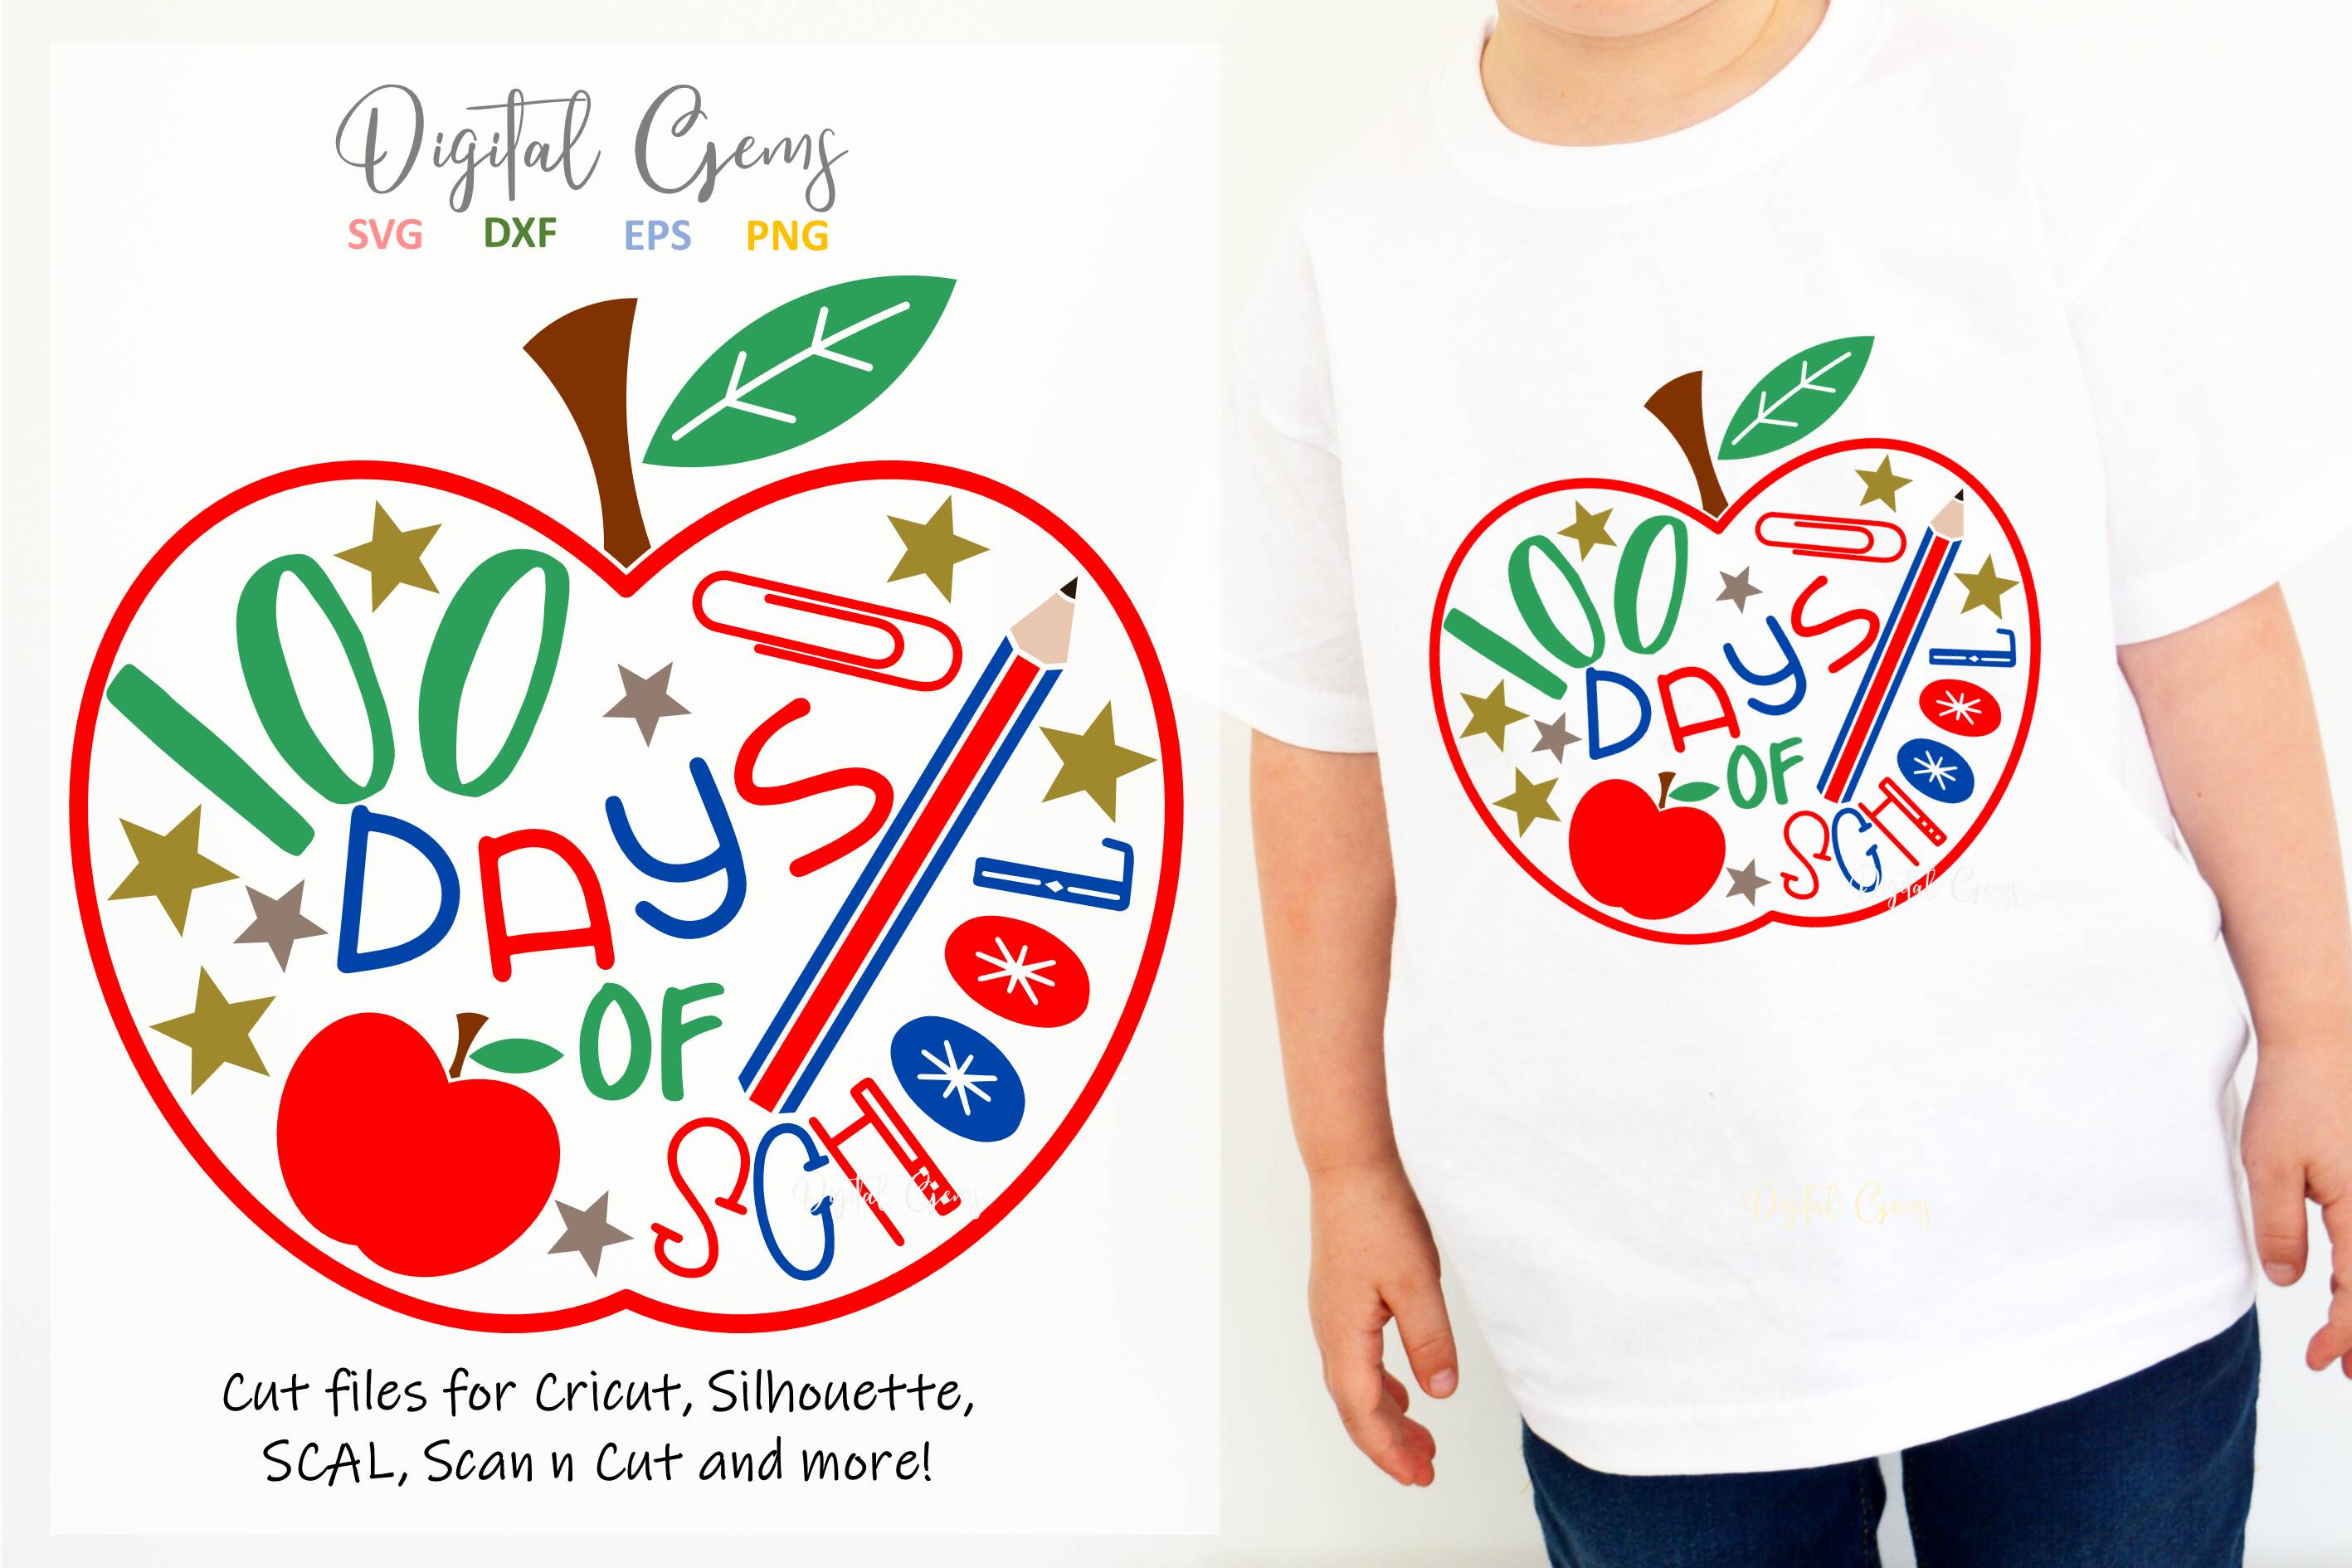 Download Free 100 Days Of School Design Graphic By Digital Gems Creative Fabrica for Cricut Explore, Silhouette and other cutting machines.